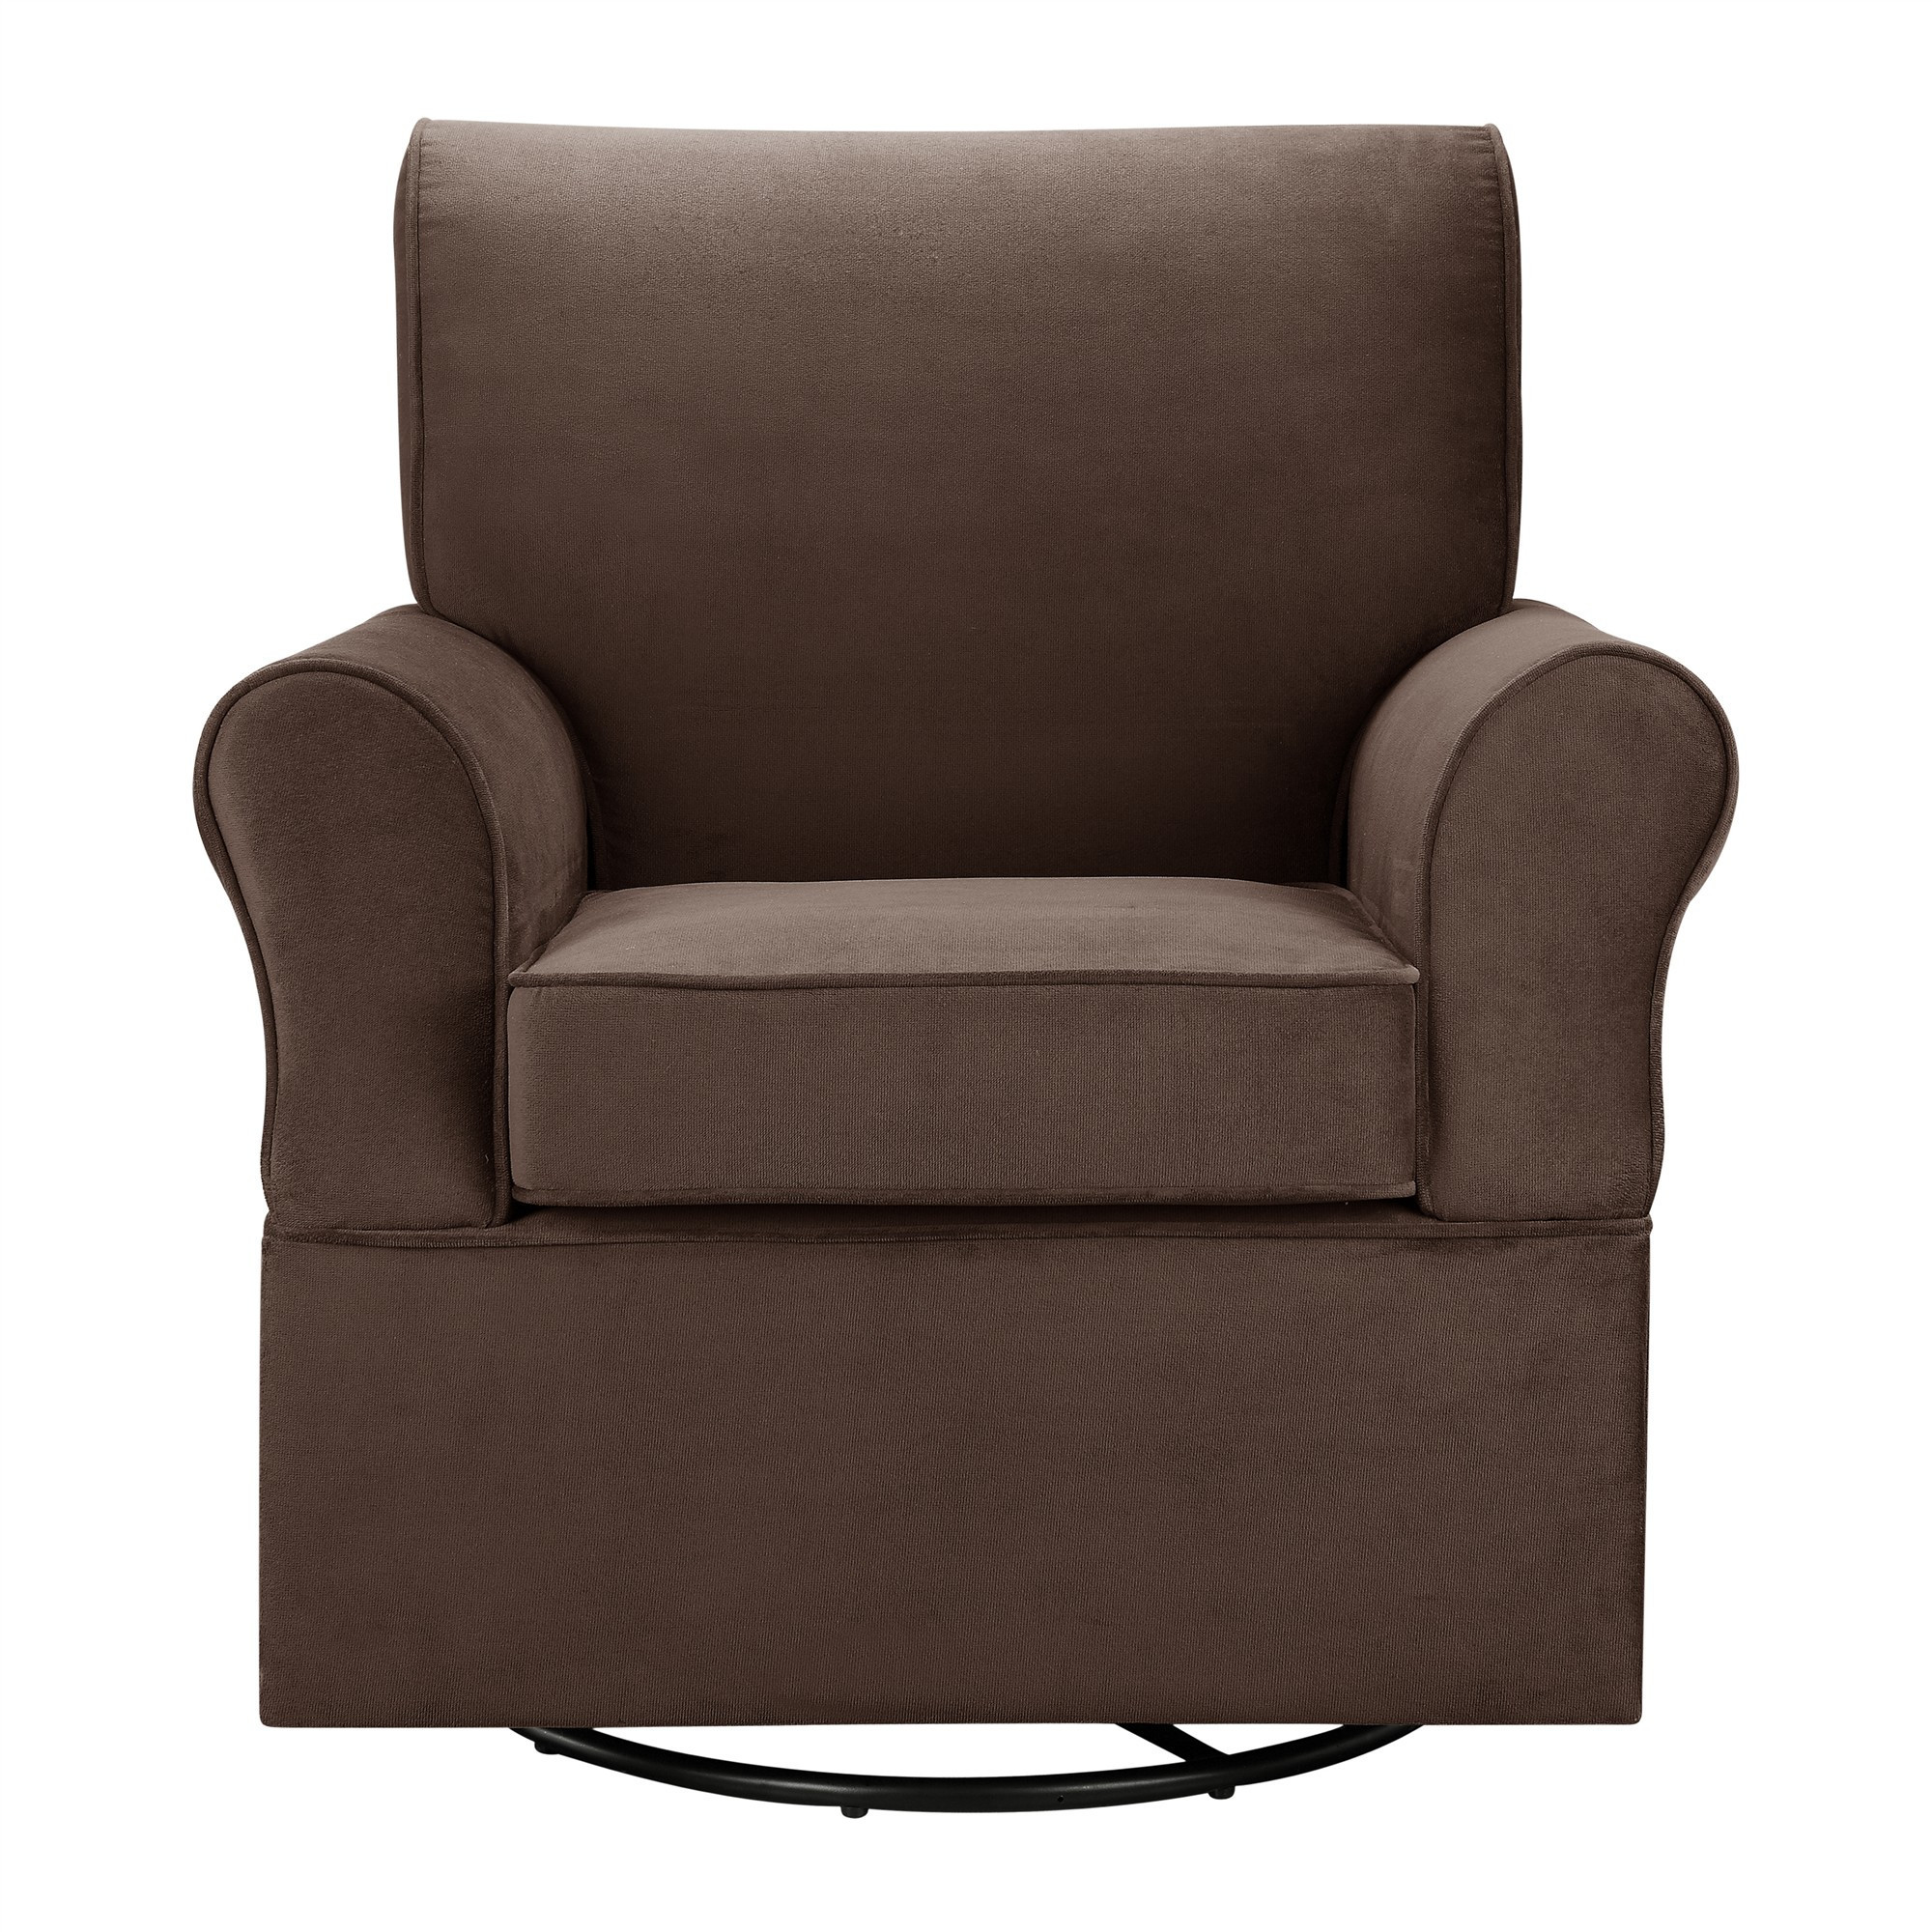 Best ideas about Swivel Glider Chair . Save or Pin Viv Rae Kimberley Swivel Glider and Ottoman & Reviews Now.